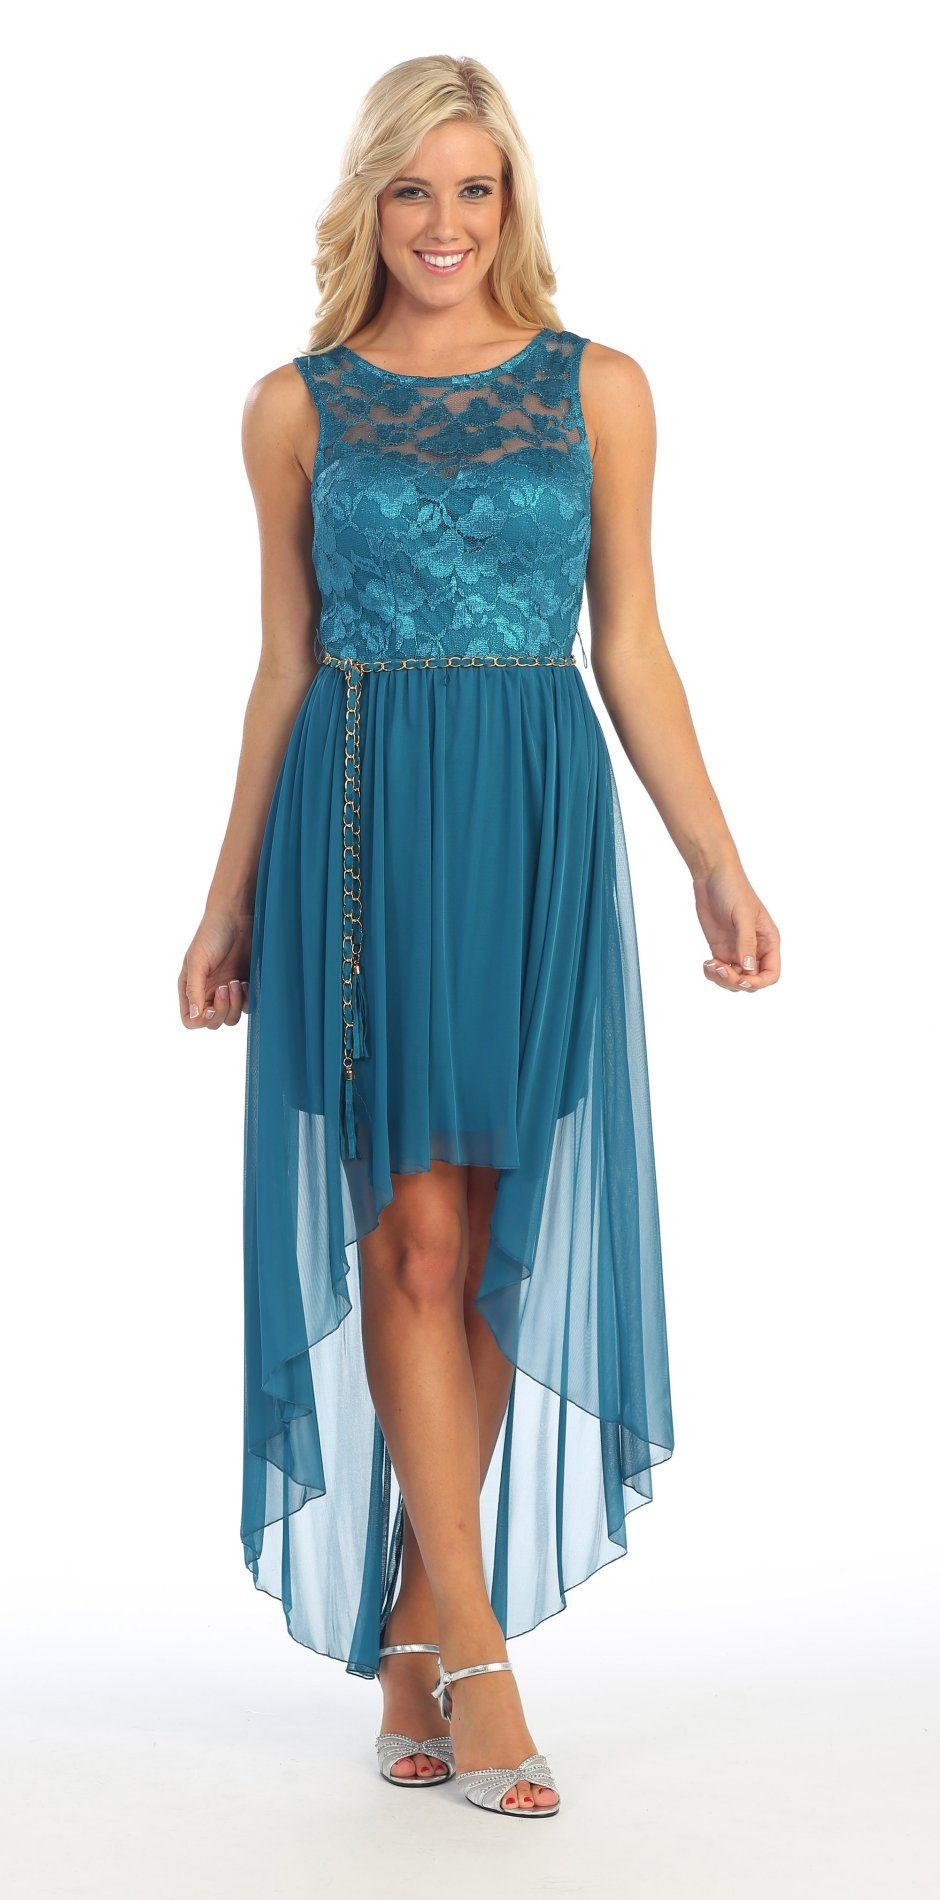 High Low Teal Dress Chiffon Lace Top Wide Strap Illusion Neck $99.99 ...